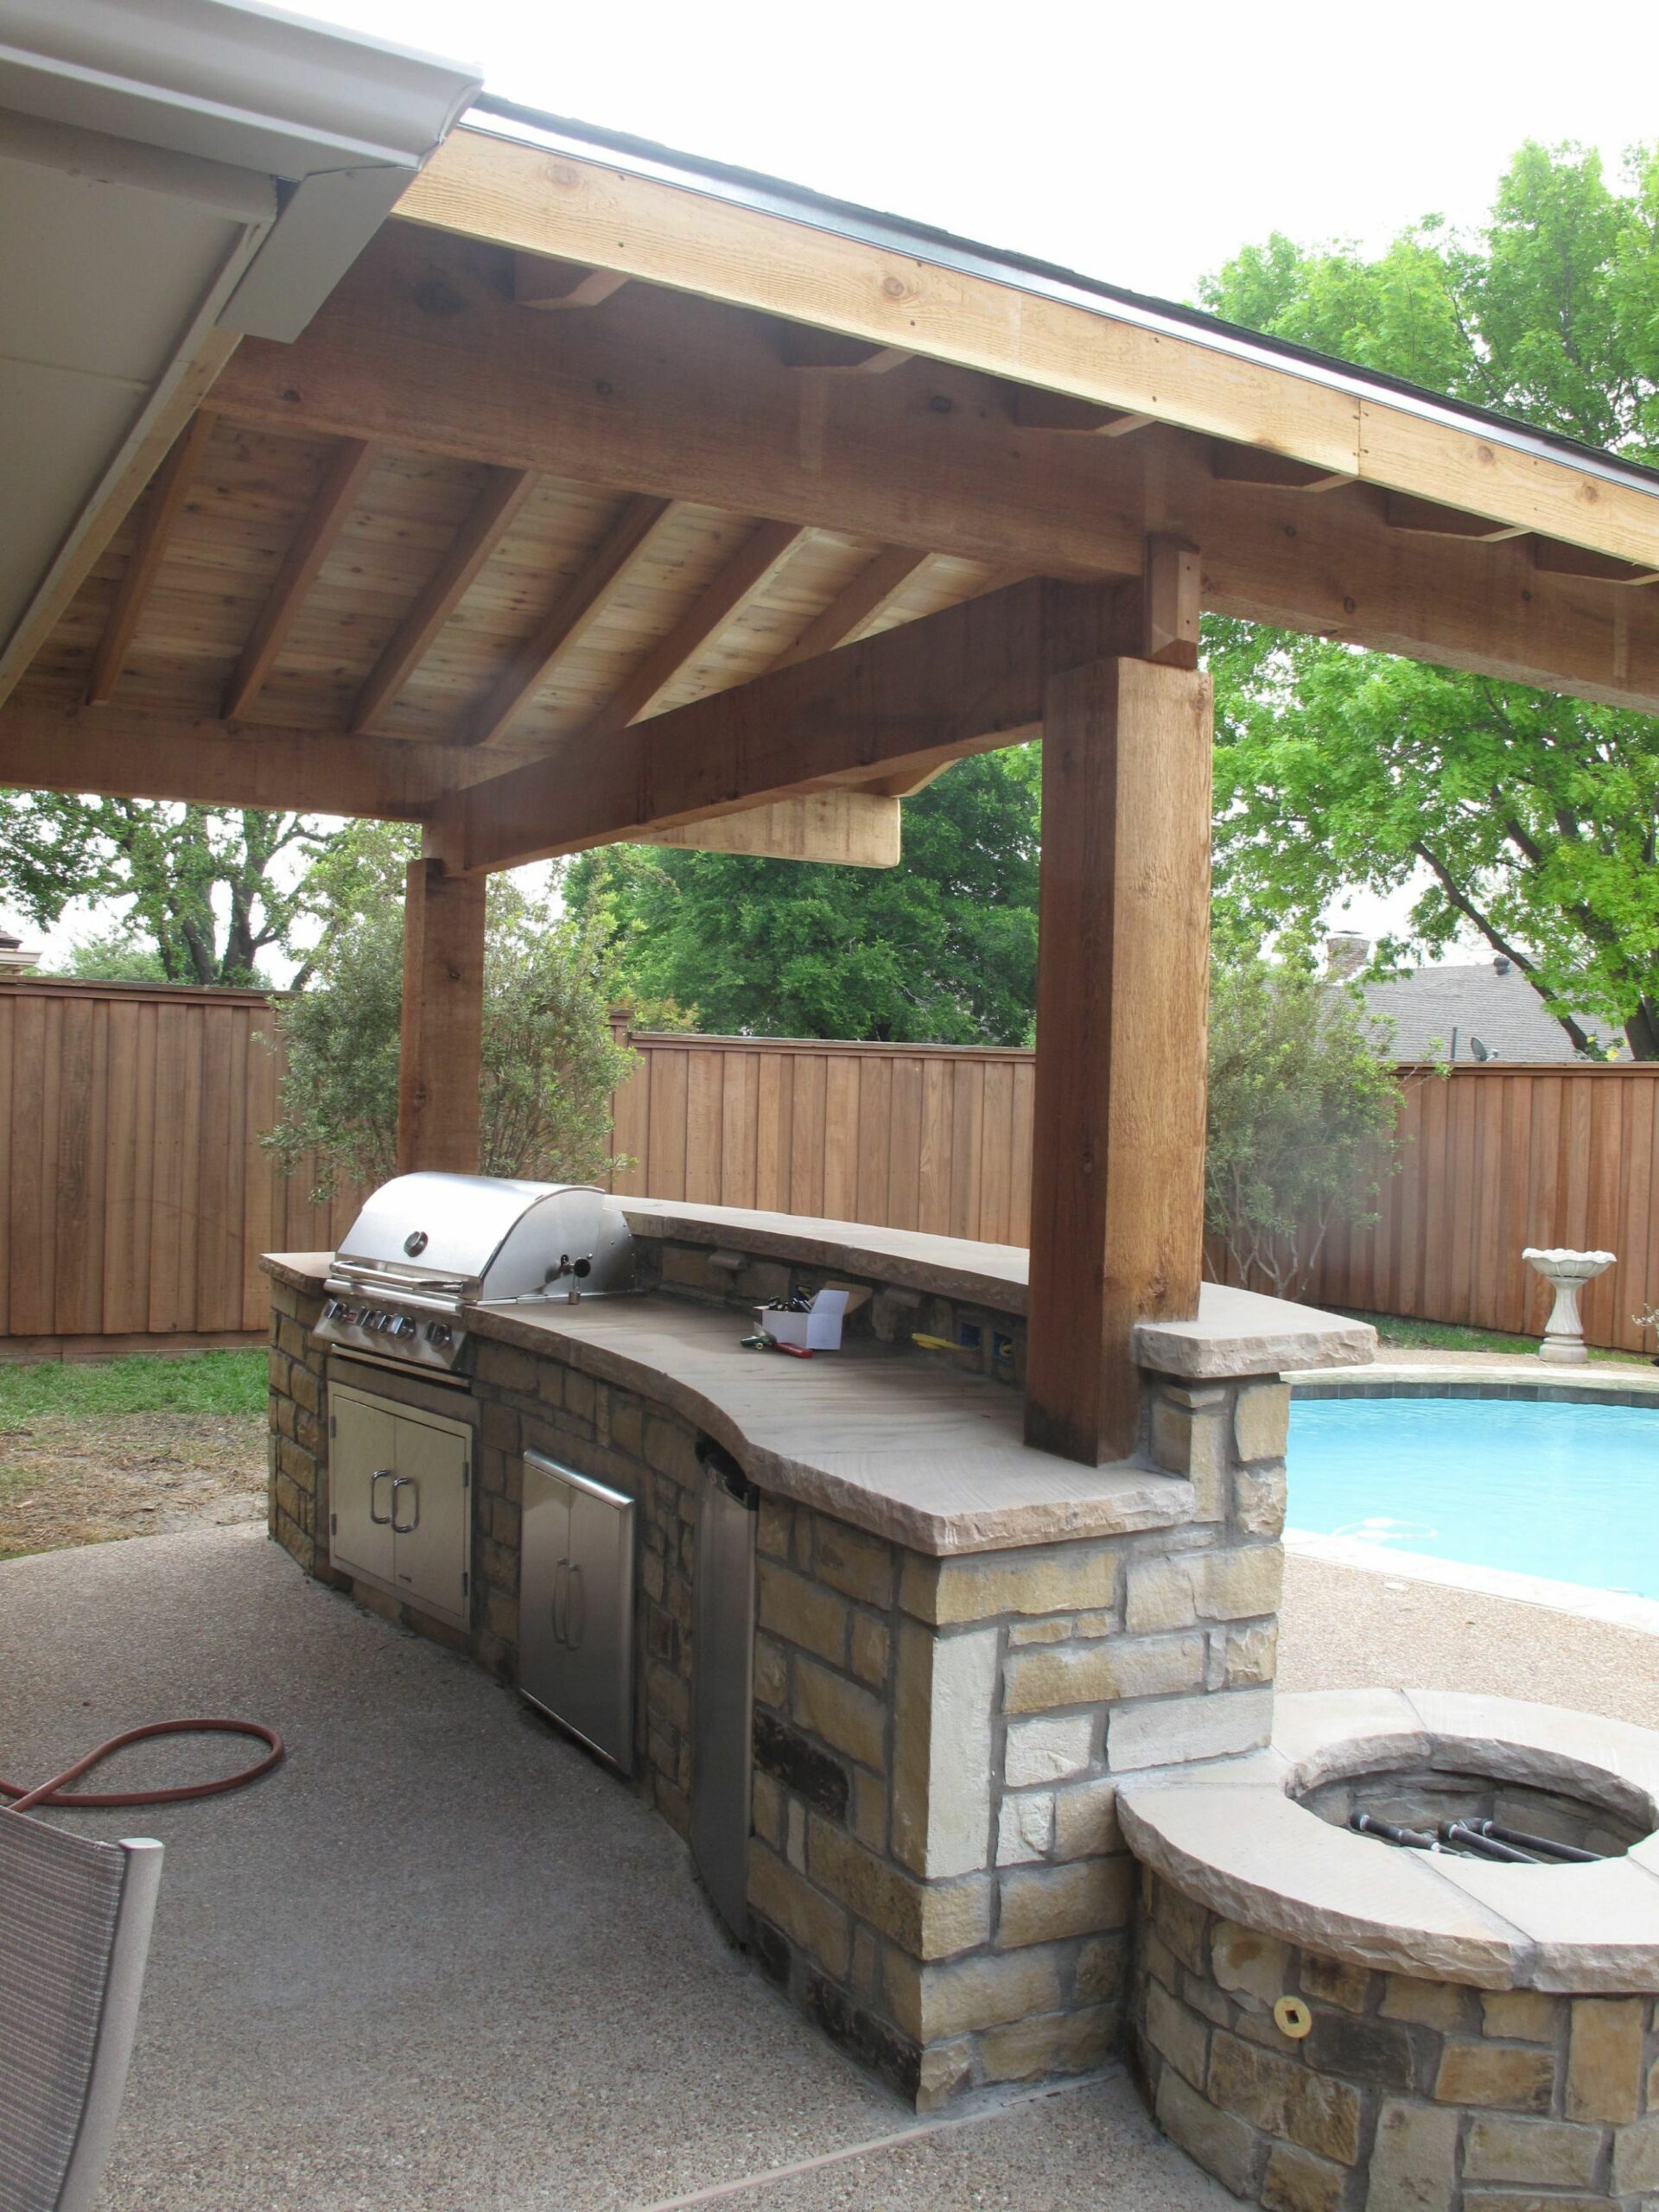 9 Best Outdoor Kitchen Design Ideas | Design für aussenküche ..